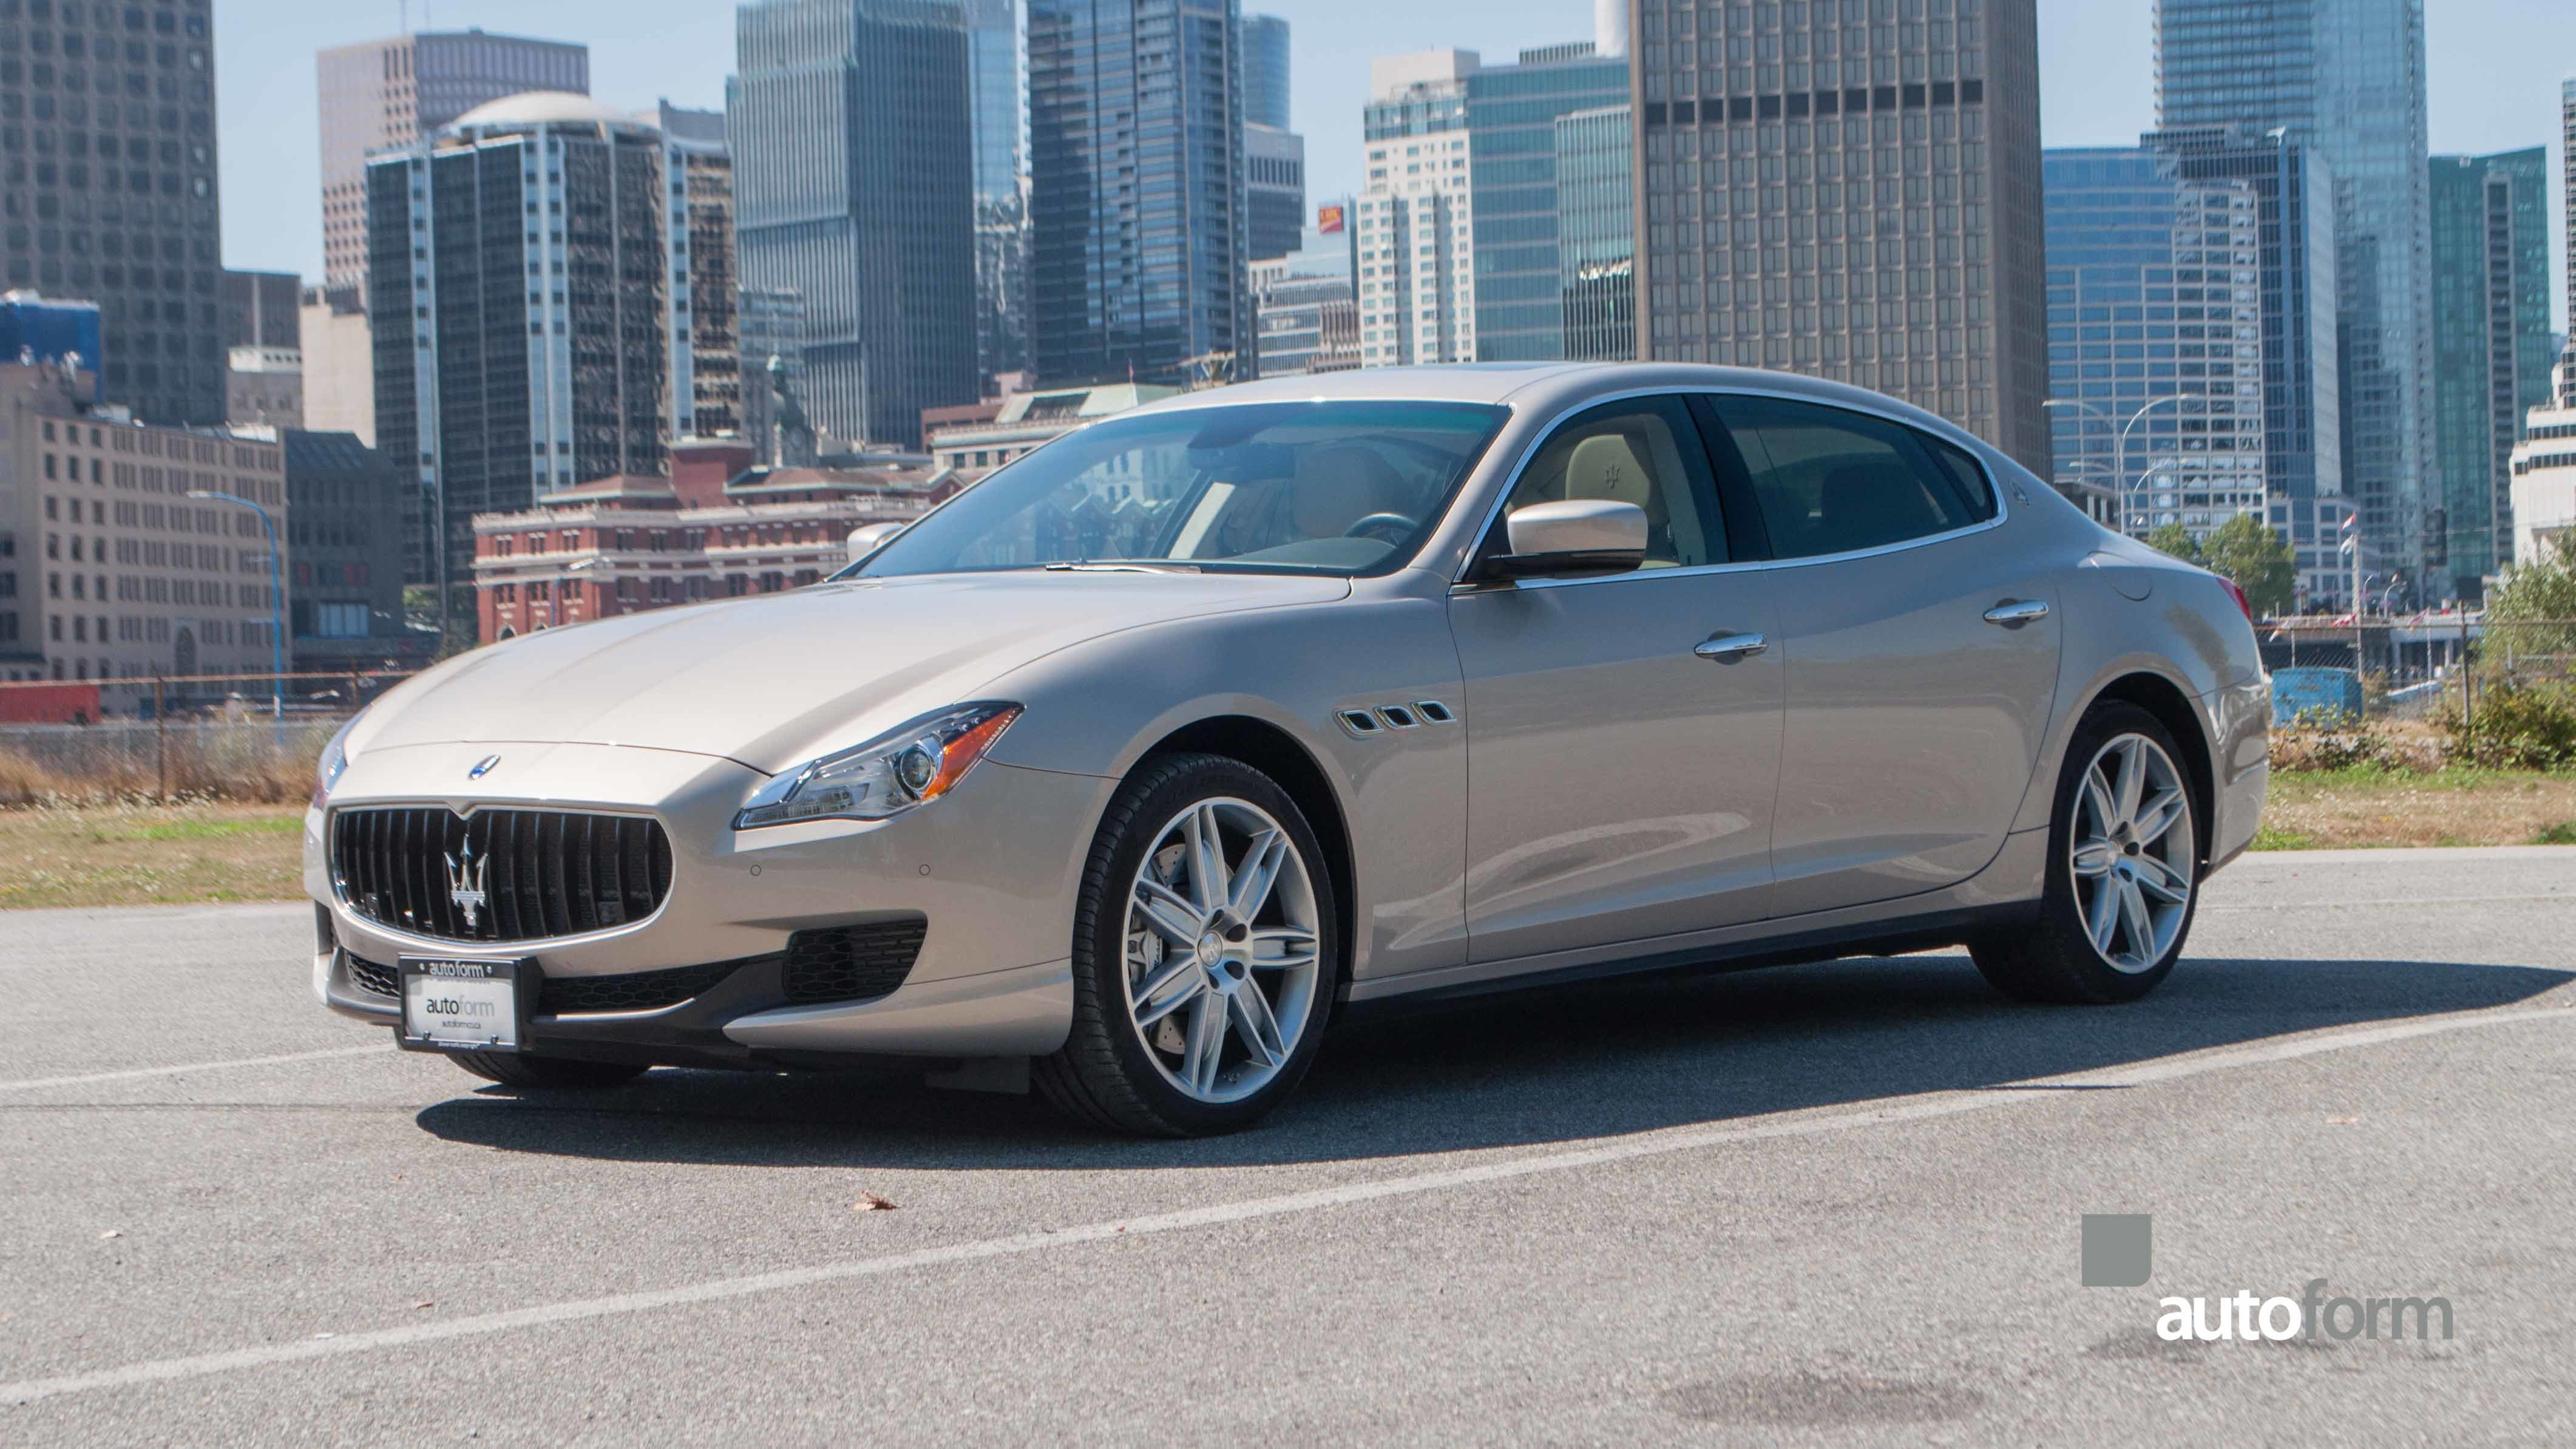 2014 maserati quattroporte gts autoform. Black Bedroom Furniture Sets. Home Design Ideas